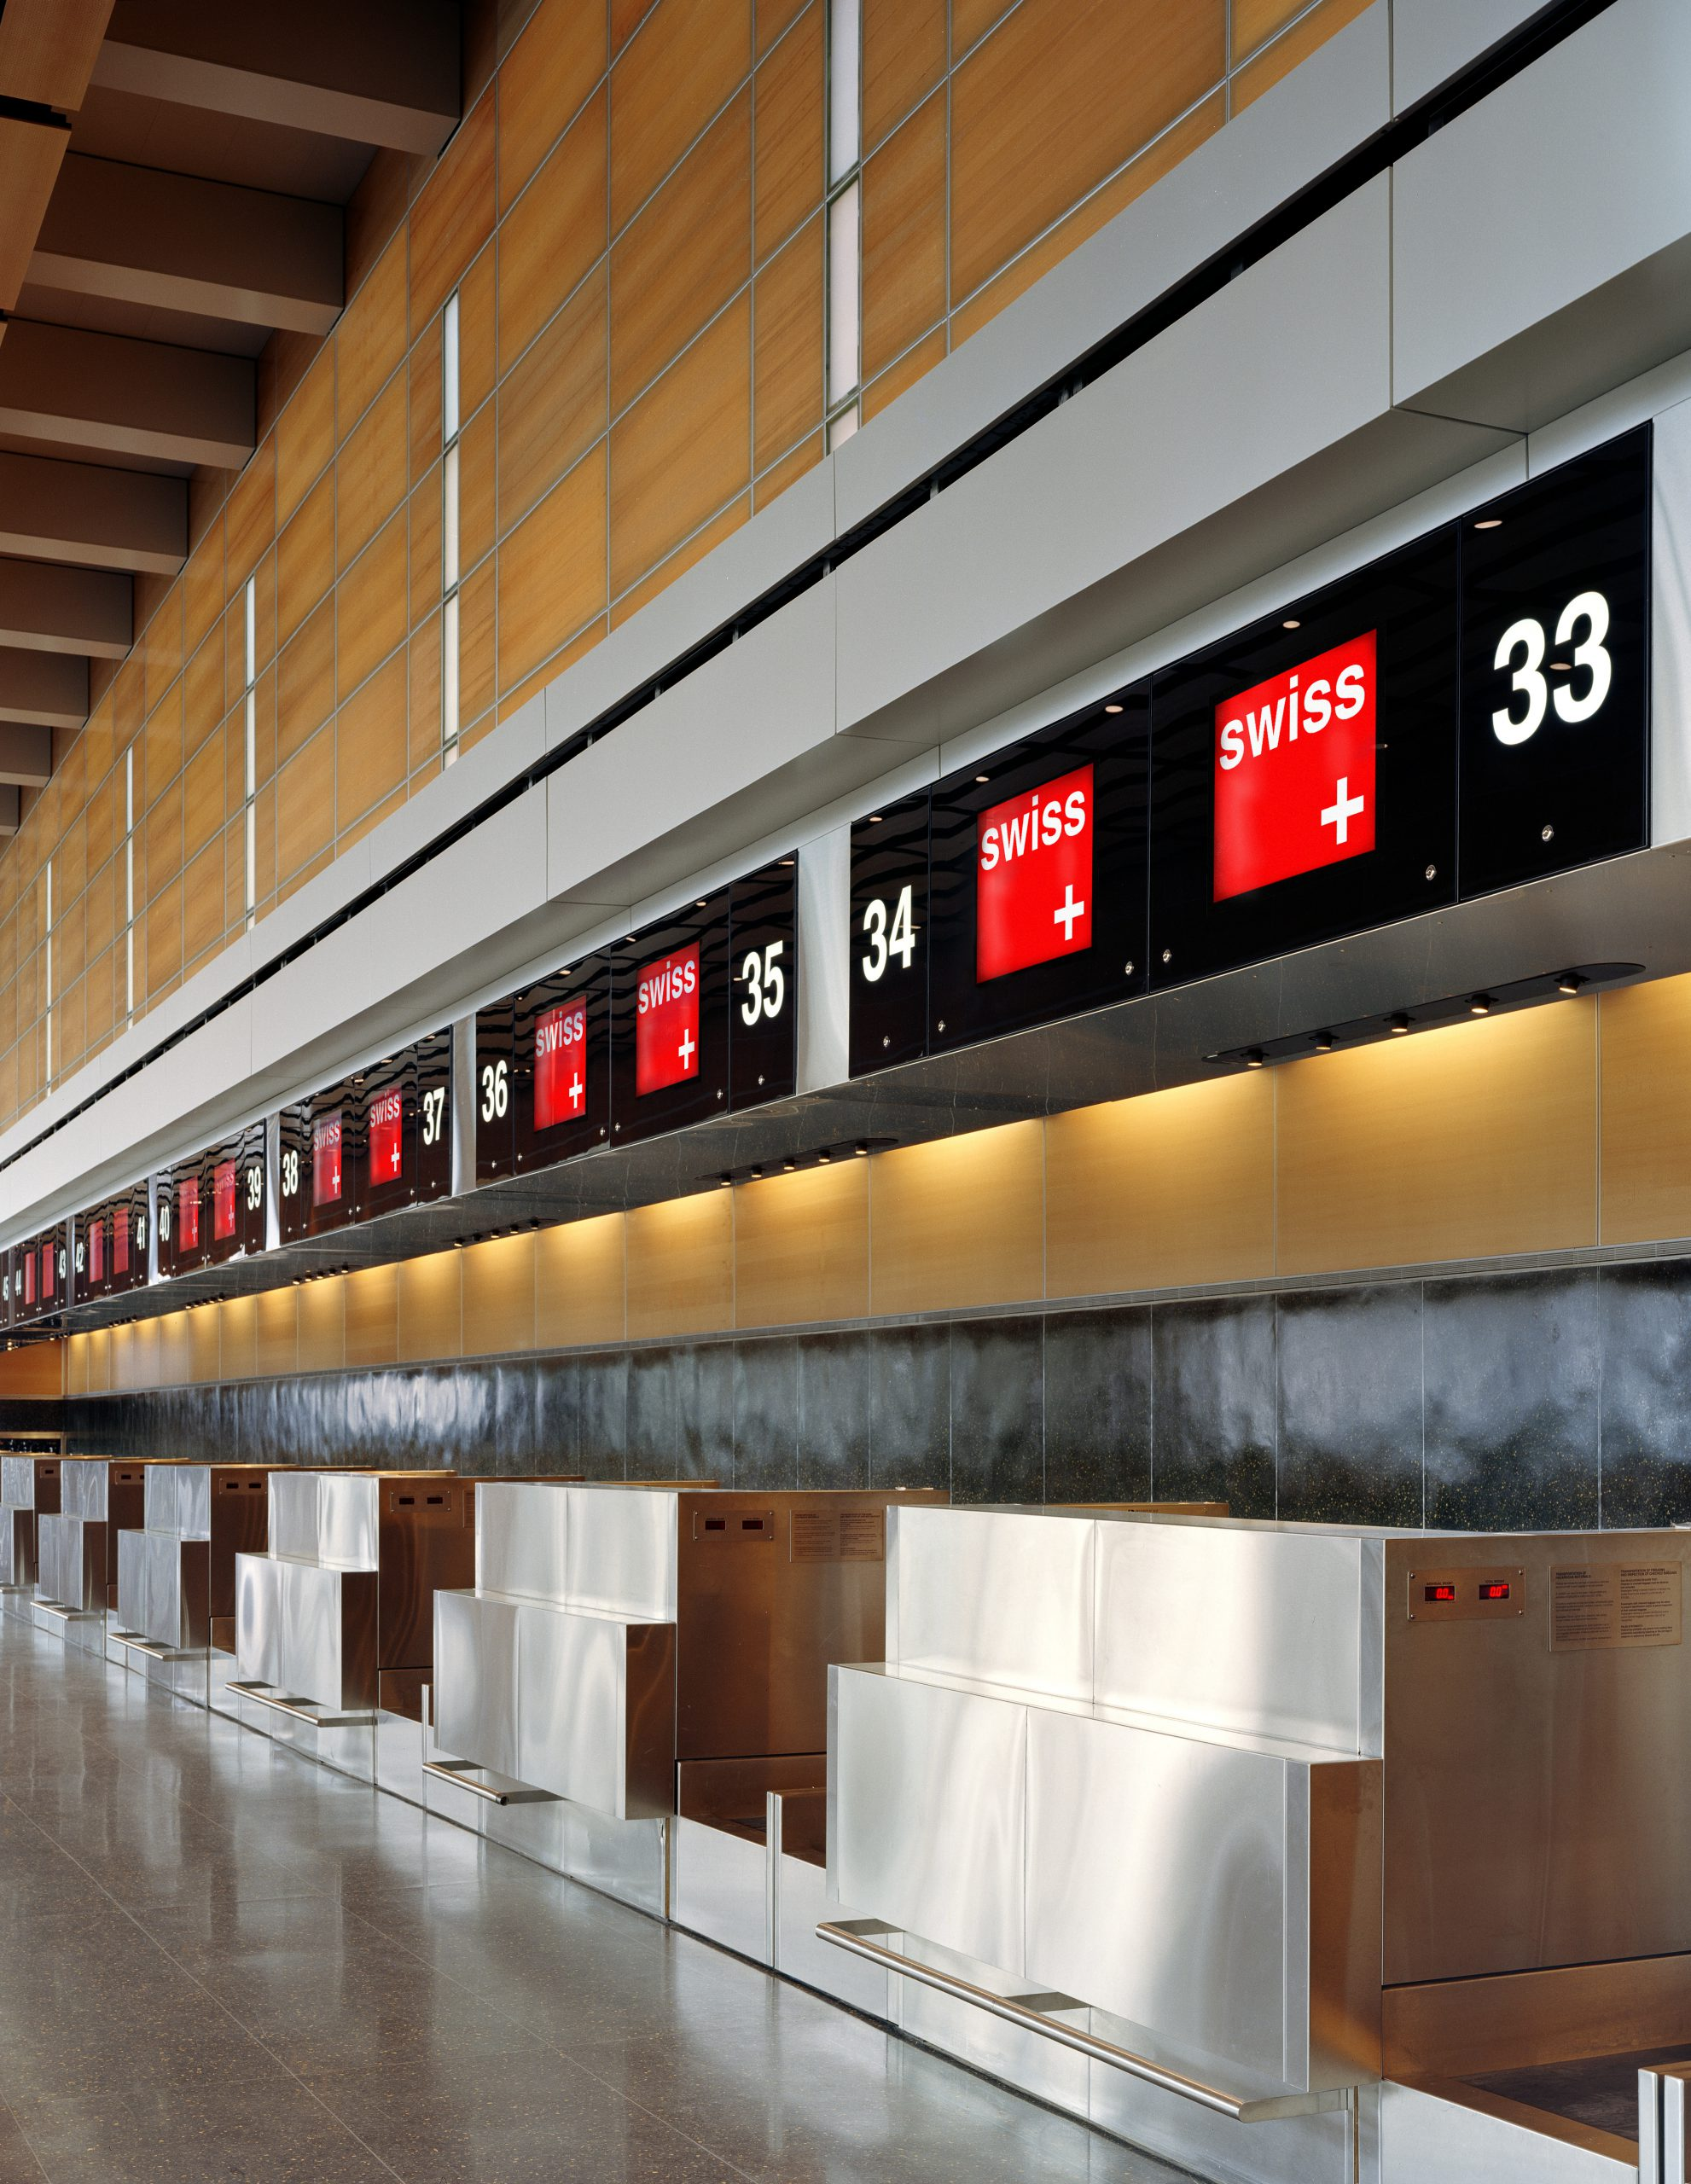 Project image 1 for Terminal E Signage, Logan International Airport